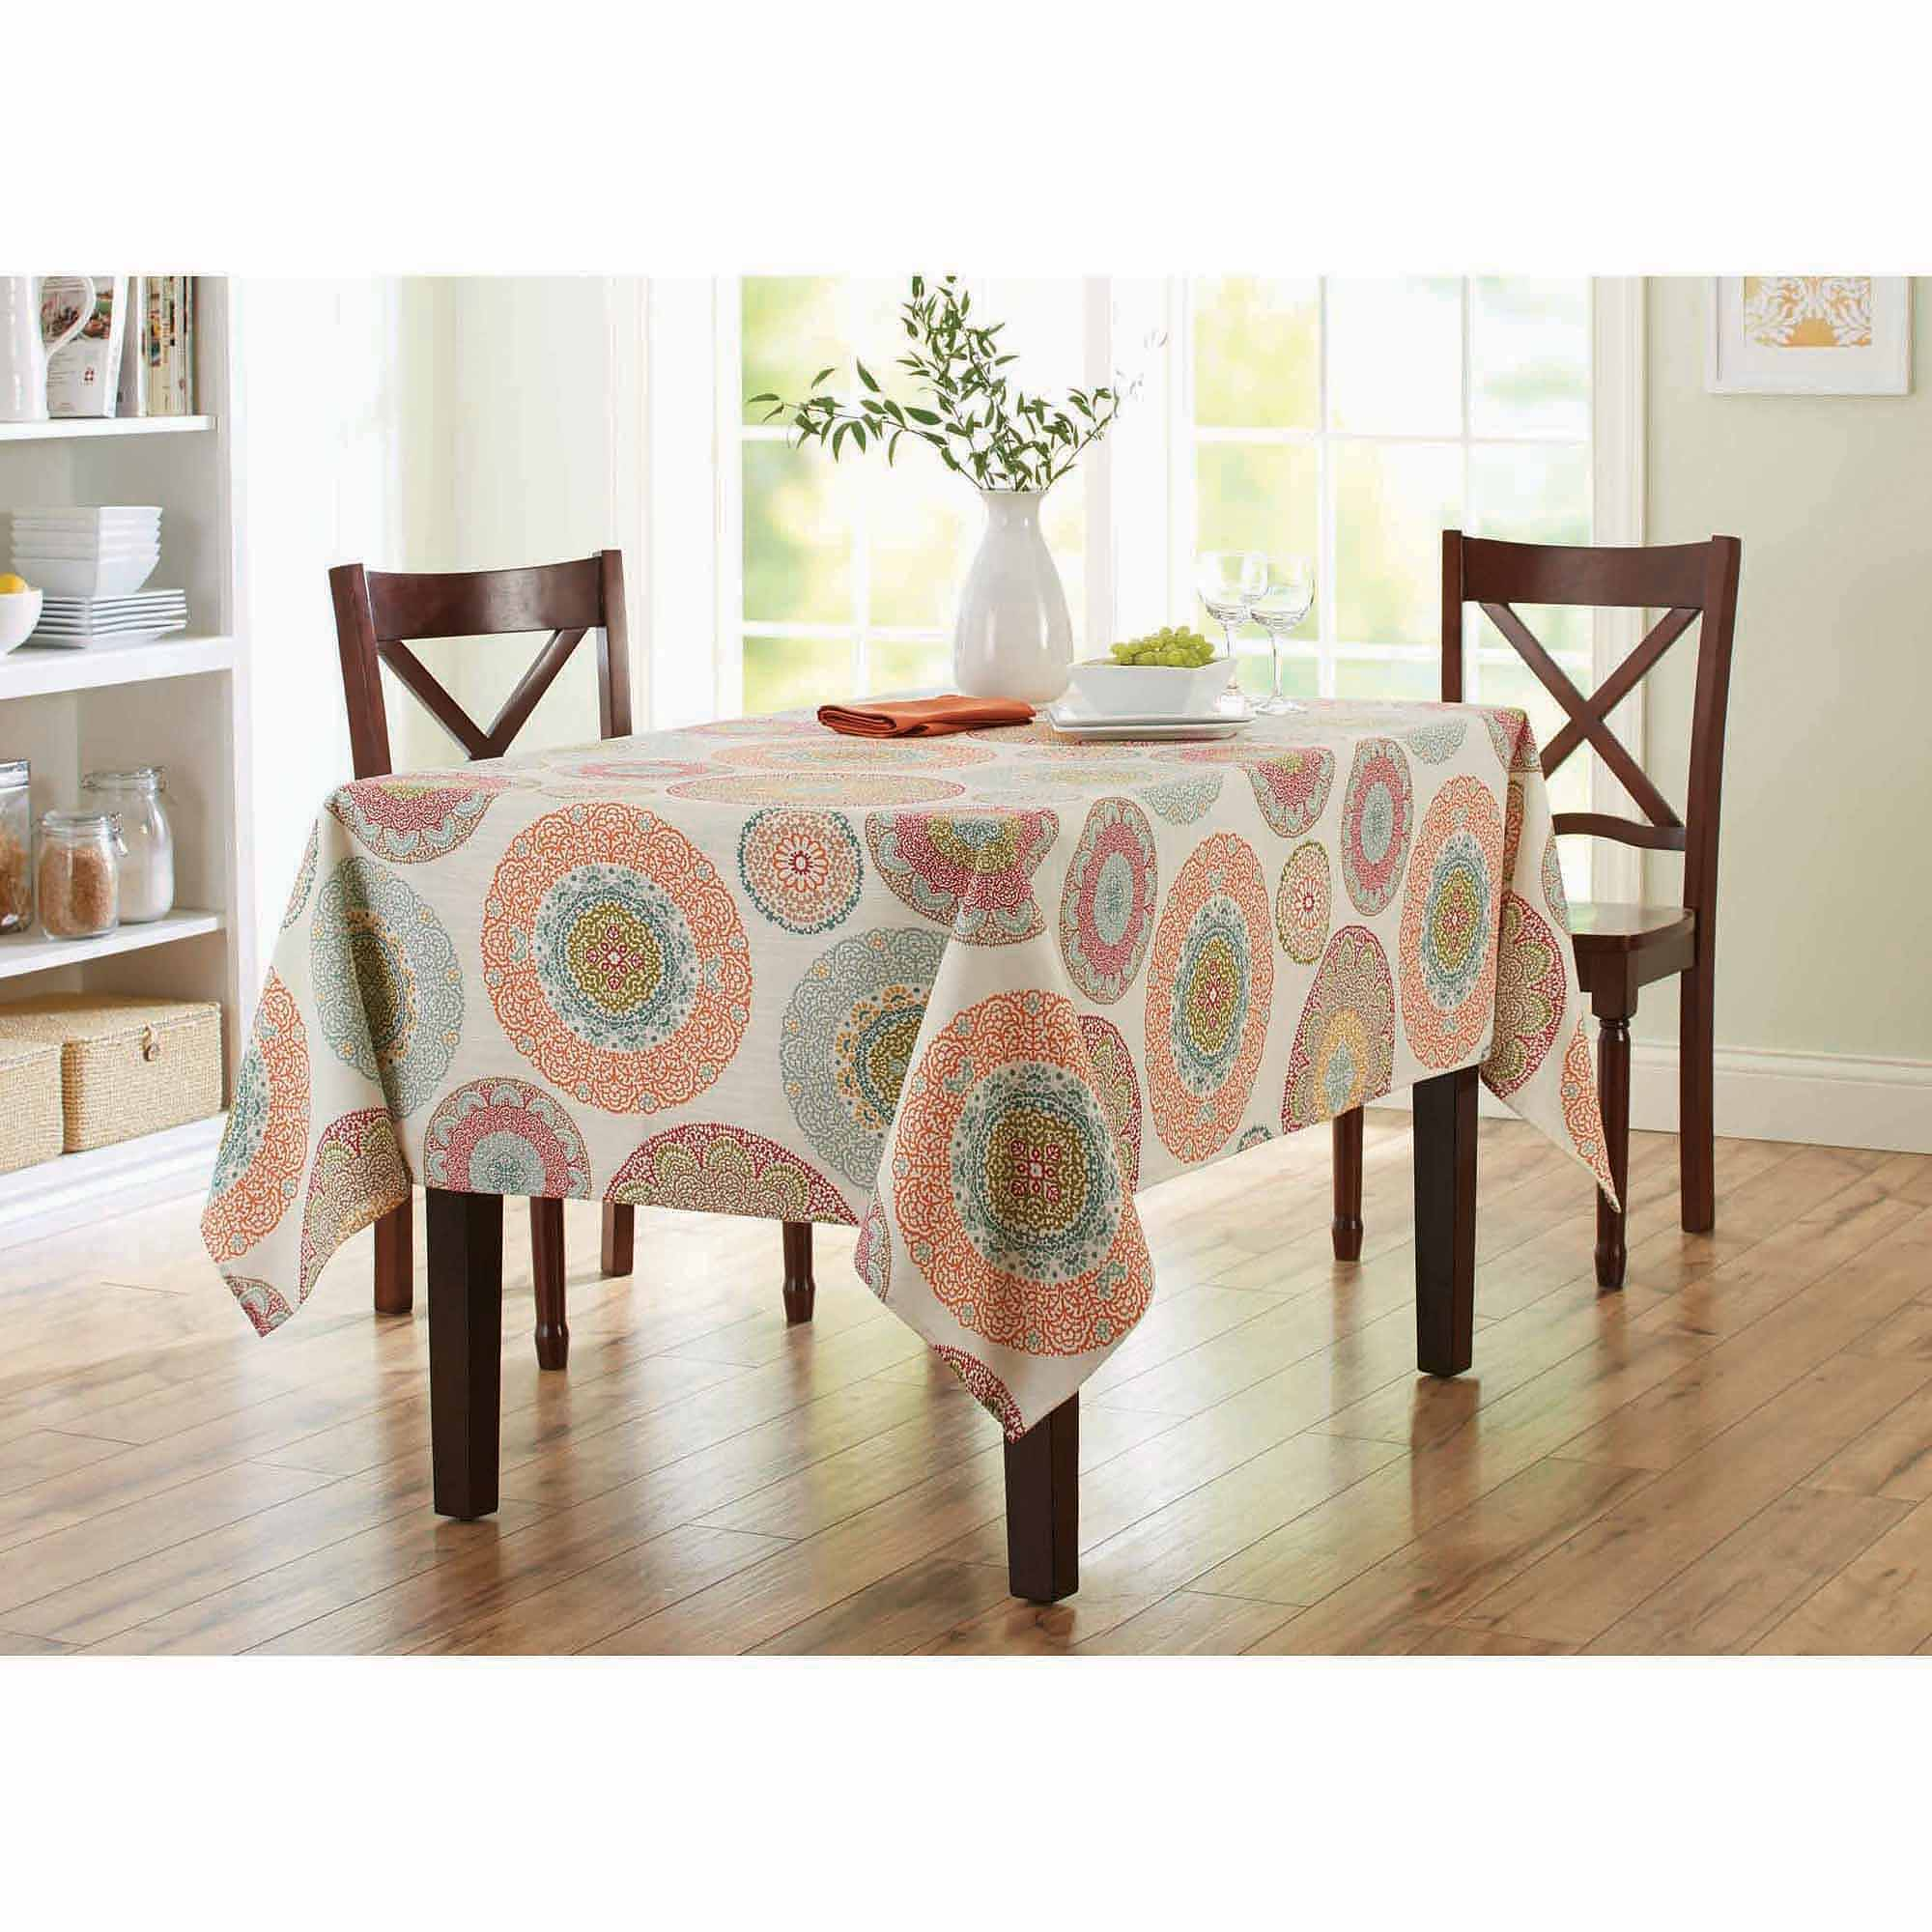 Kitchen Table Covers Home Design Inspiration